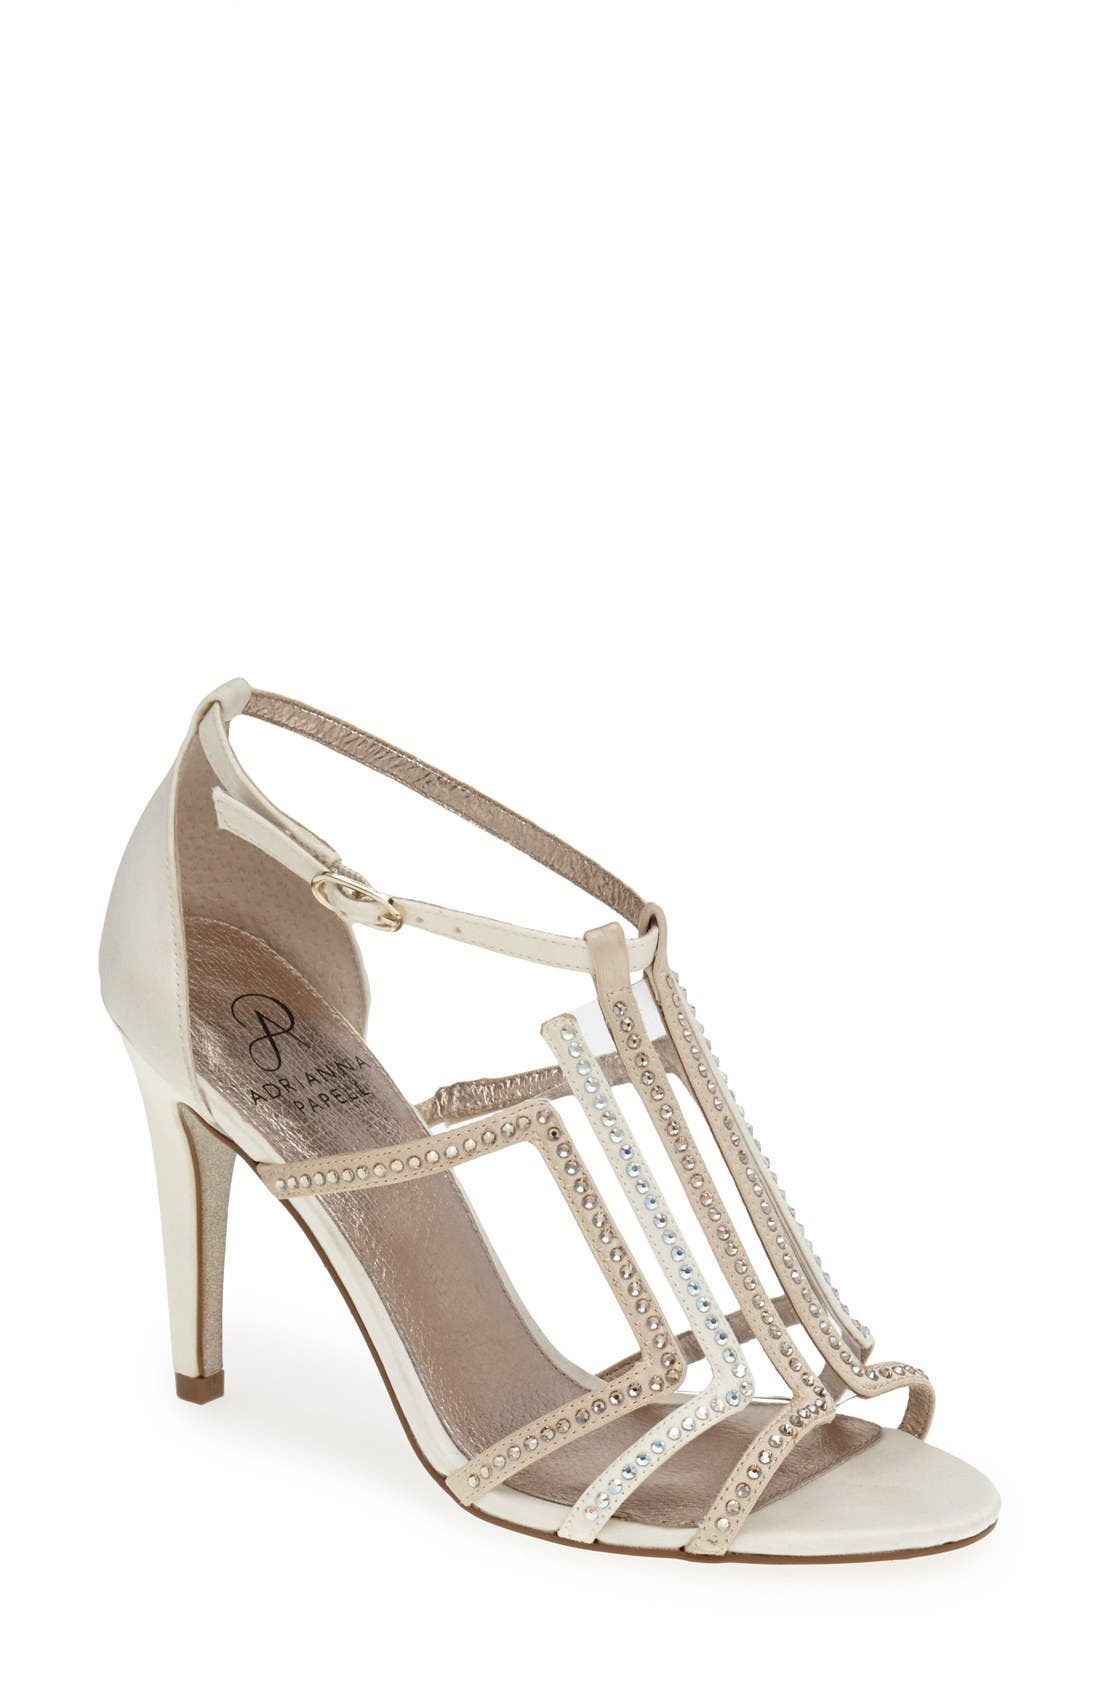 Alternate Image 1 Selected - Adrianna Papell 'Emilia' Sandal (Online Only Color)